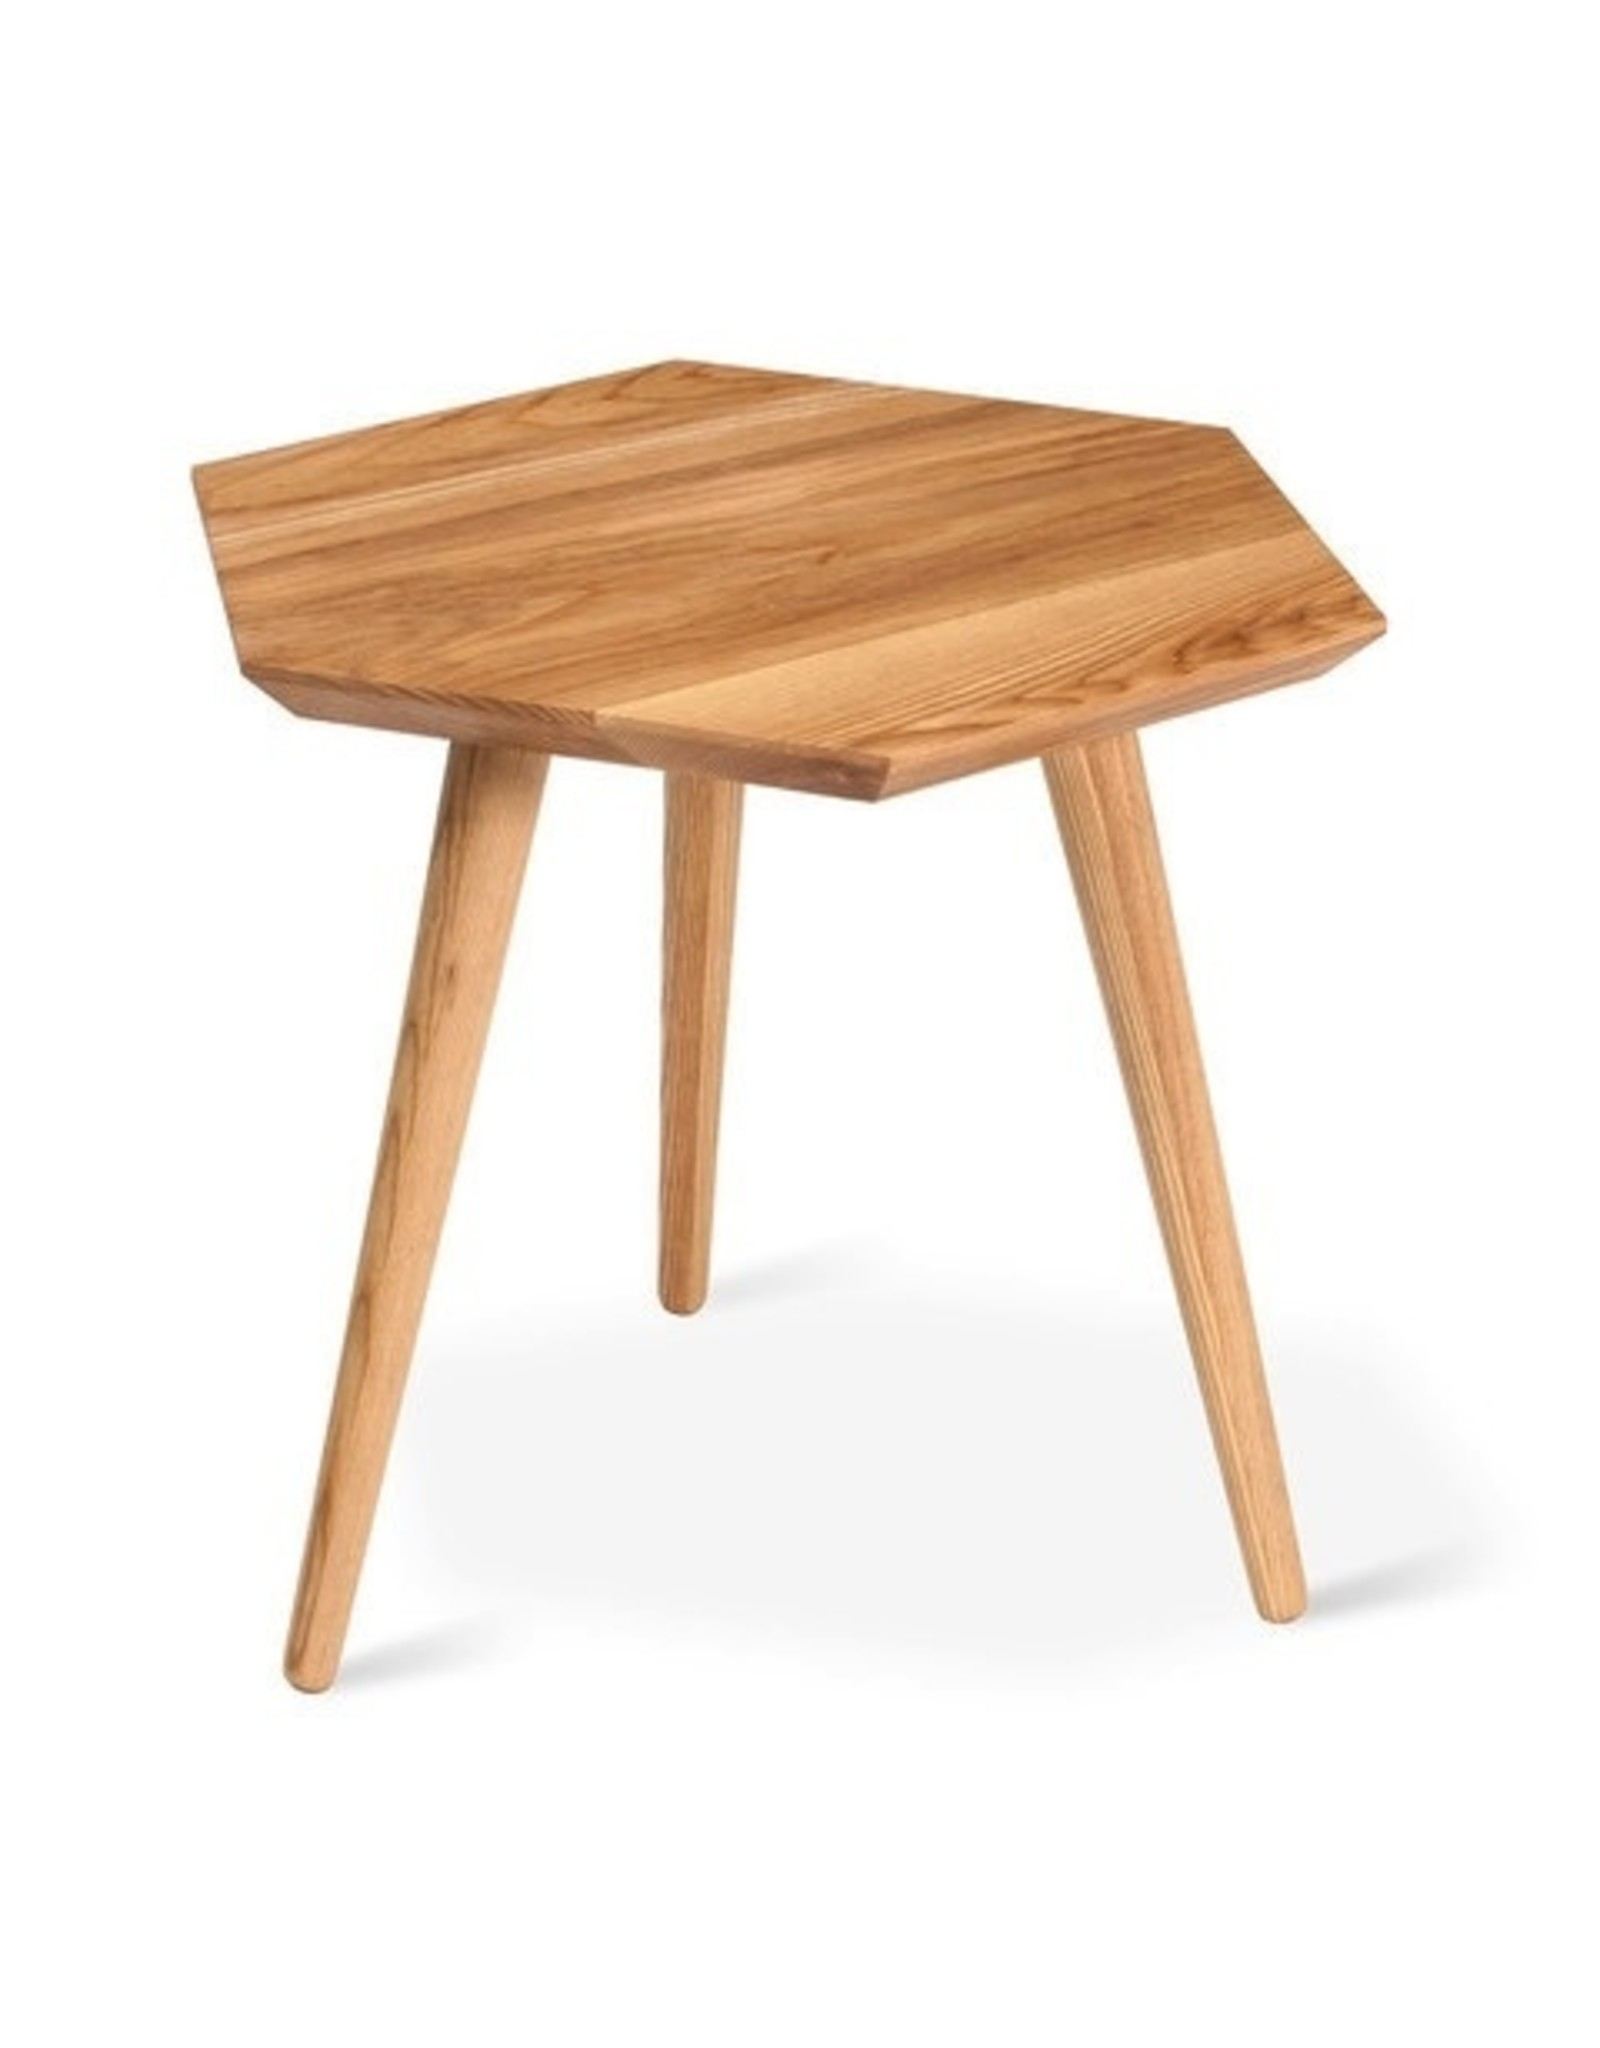 Gus* Modern Metric End Table